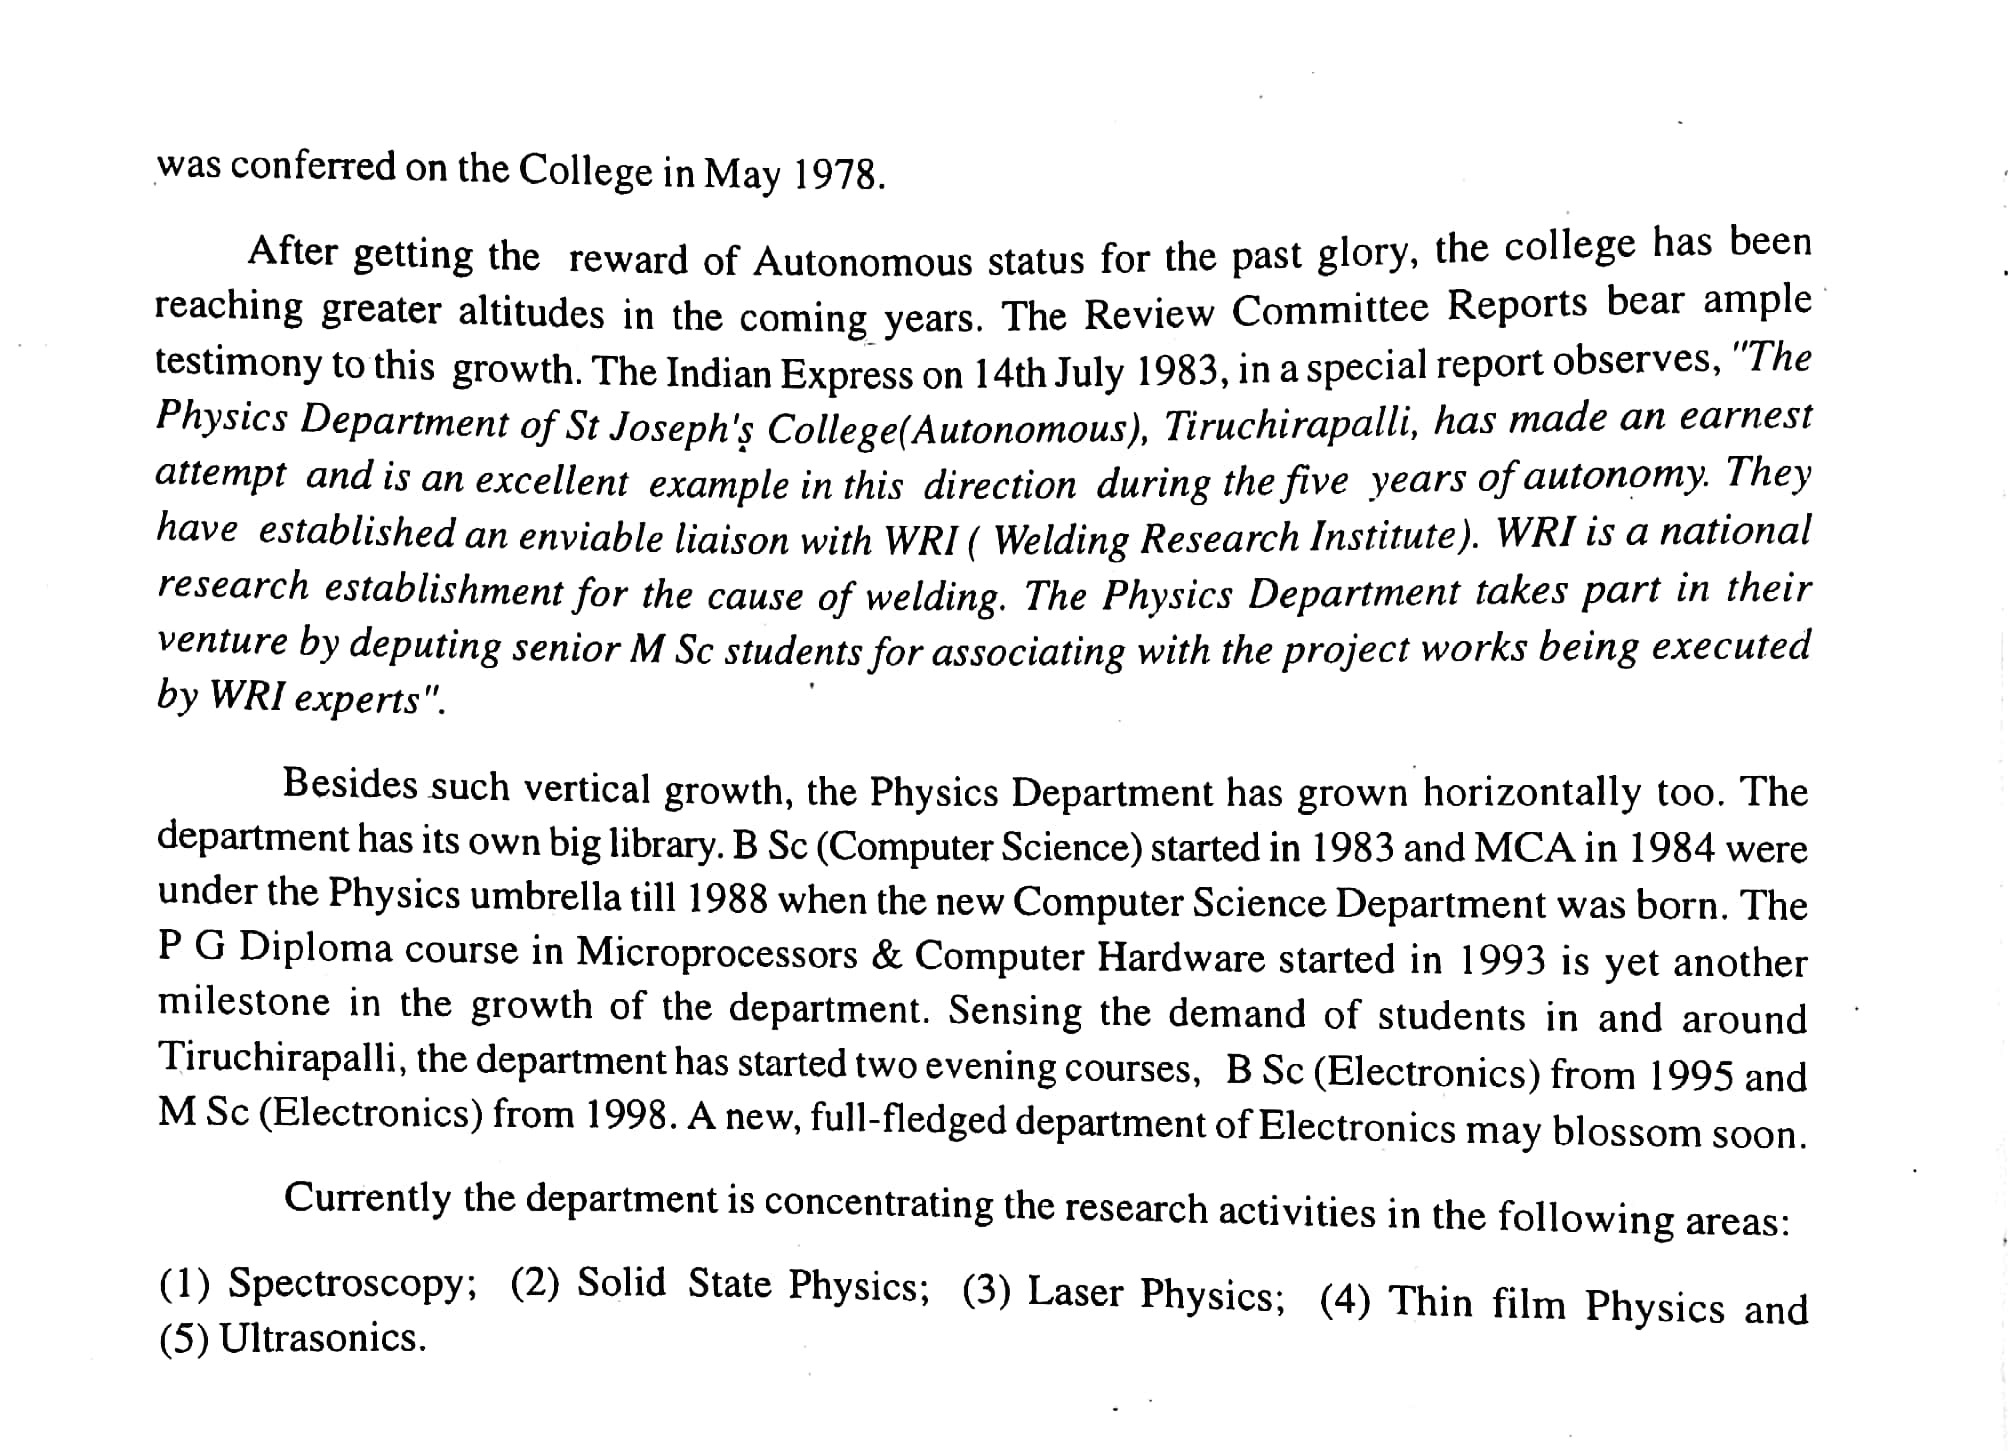 History of the Physics Department of St Joseph's College